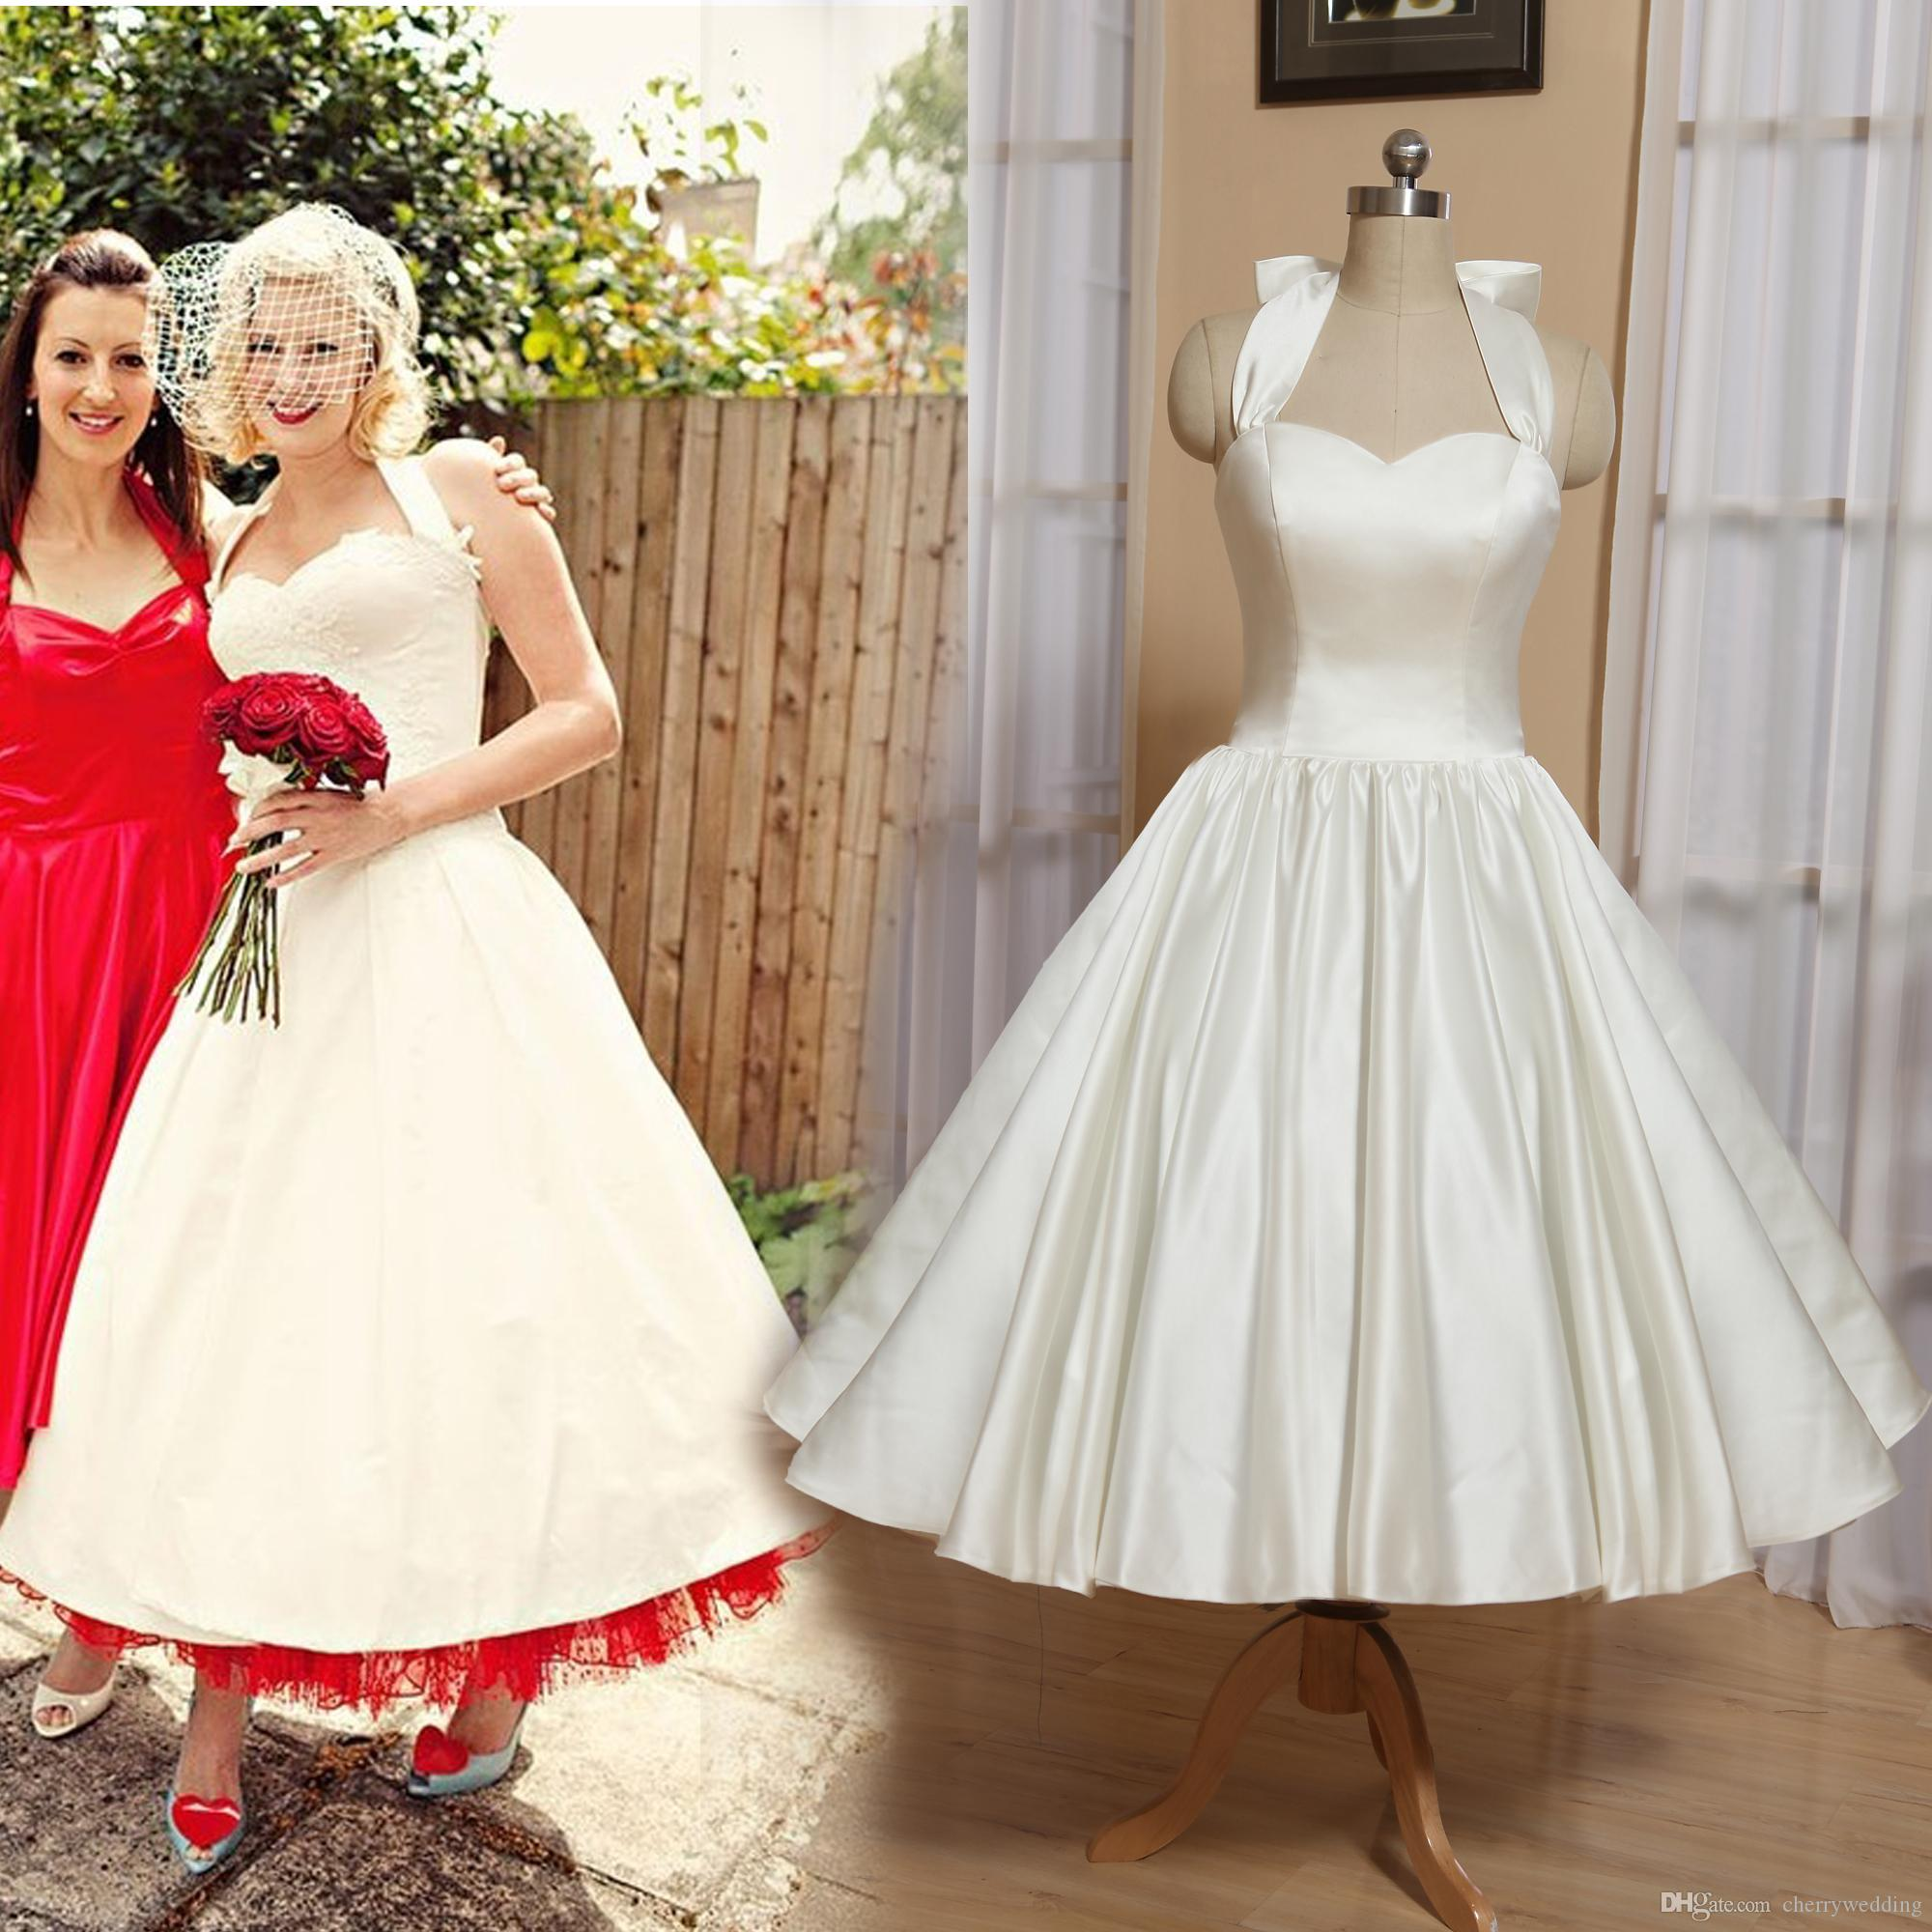 Wedding Dresses For Over 50s Uk: Discount Short Wedding Dresses 50s Wedding Dress Garden